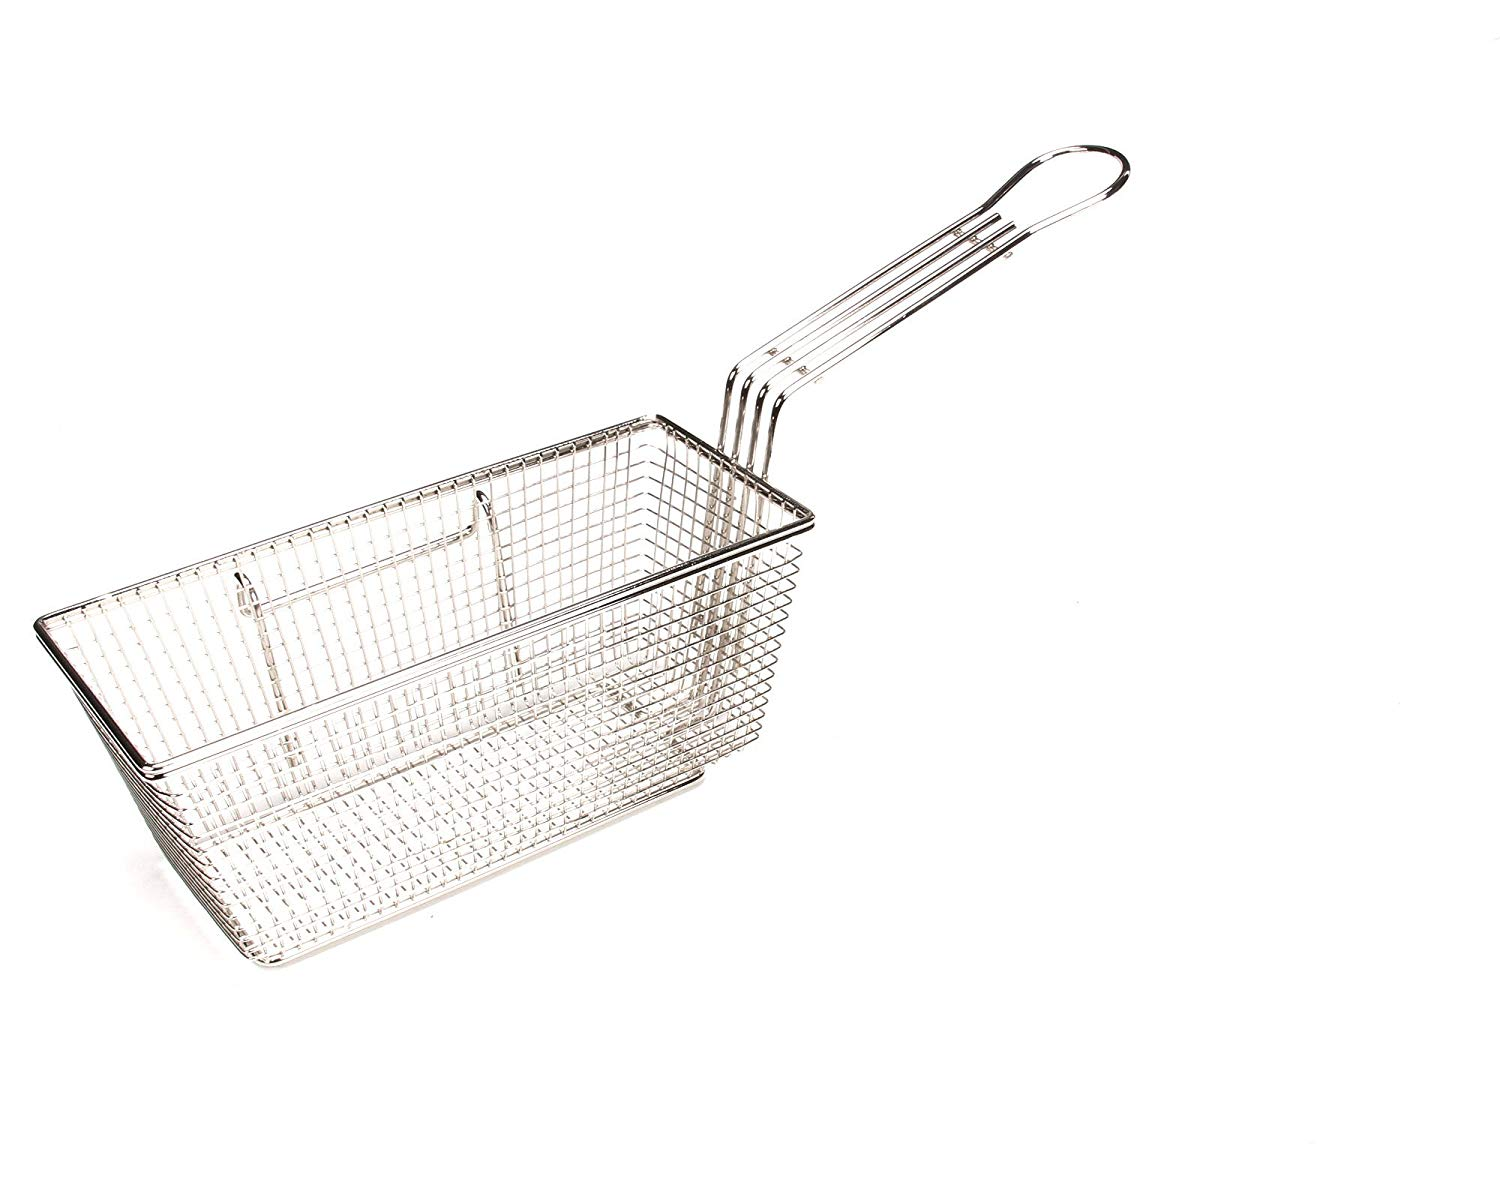 Grindmaster-Cecilware V077A Countertop Fryer Baskets with Right Hook Placement Metal Handles, 20-Pound